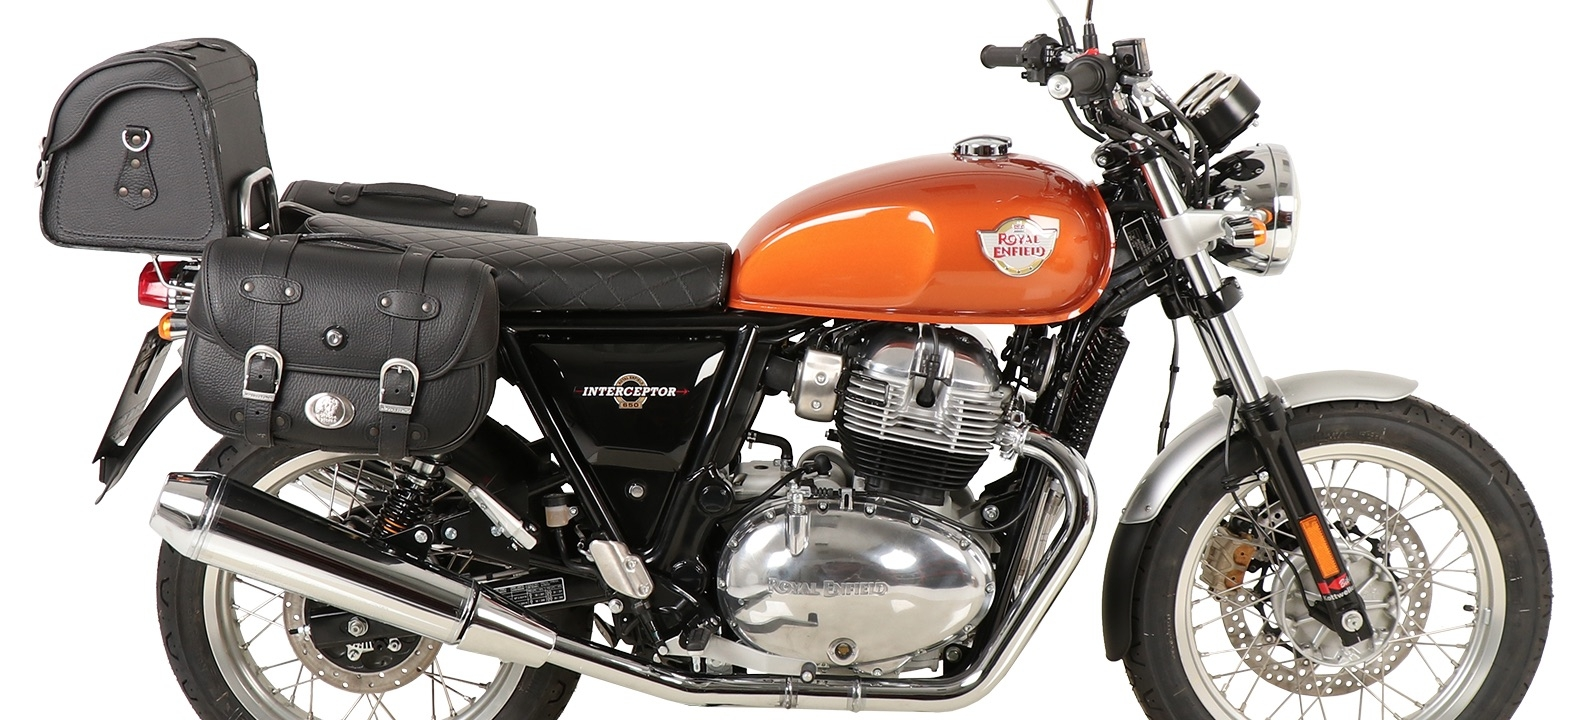 Royal Enfield Continental and Interceptor 650 with Accessories